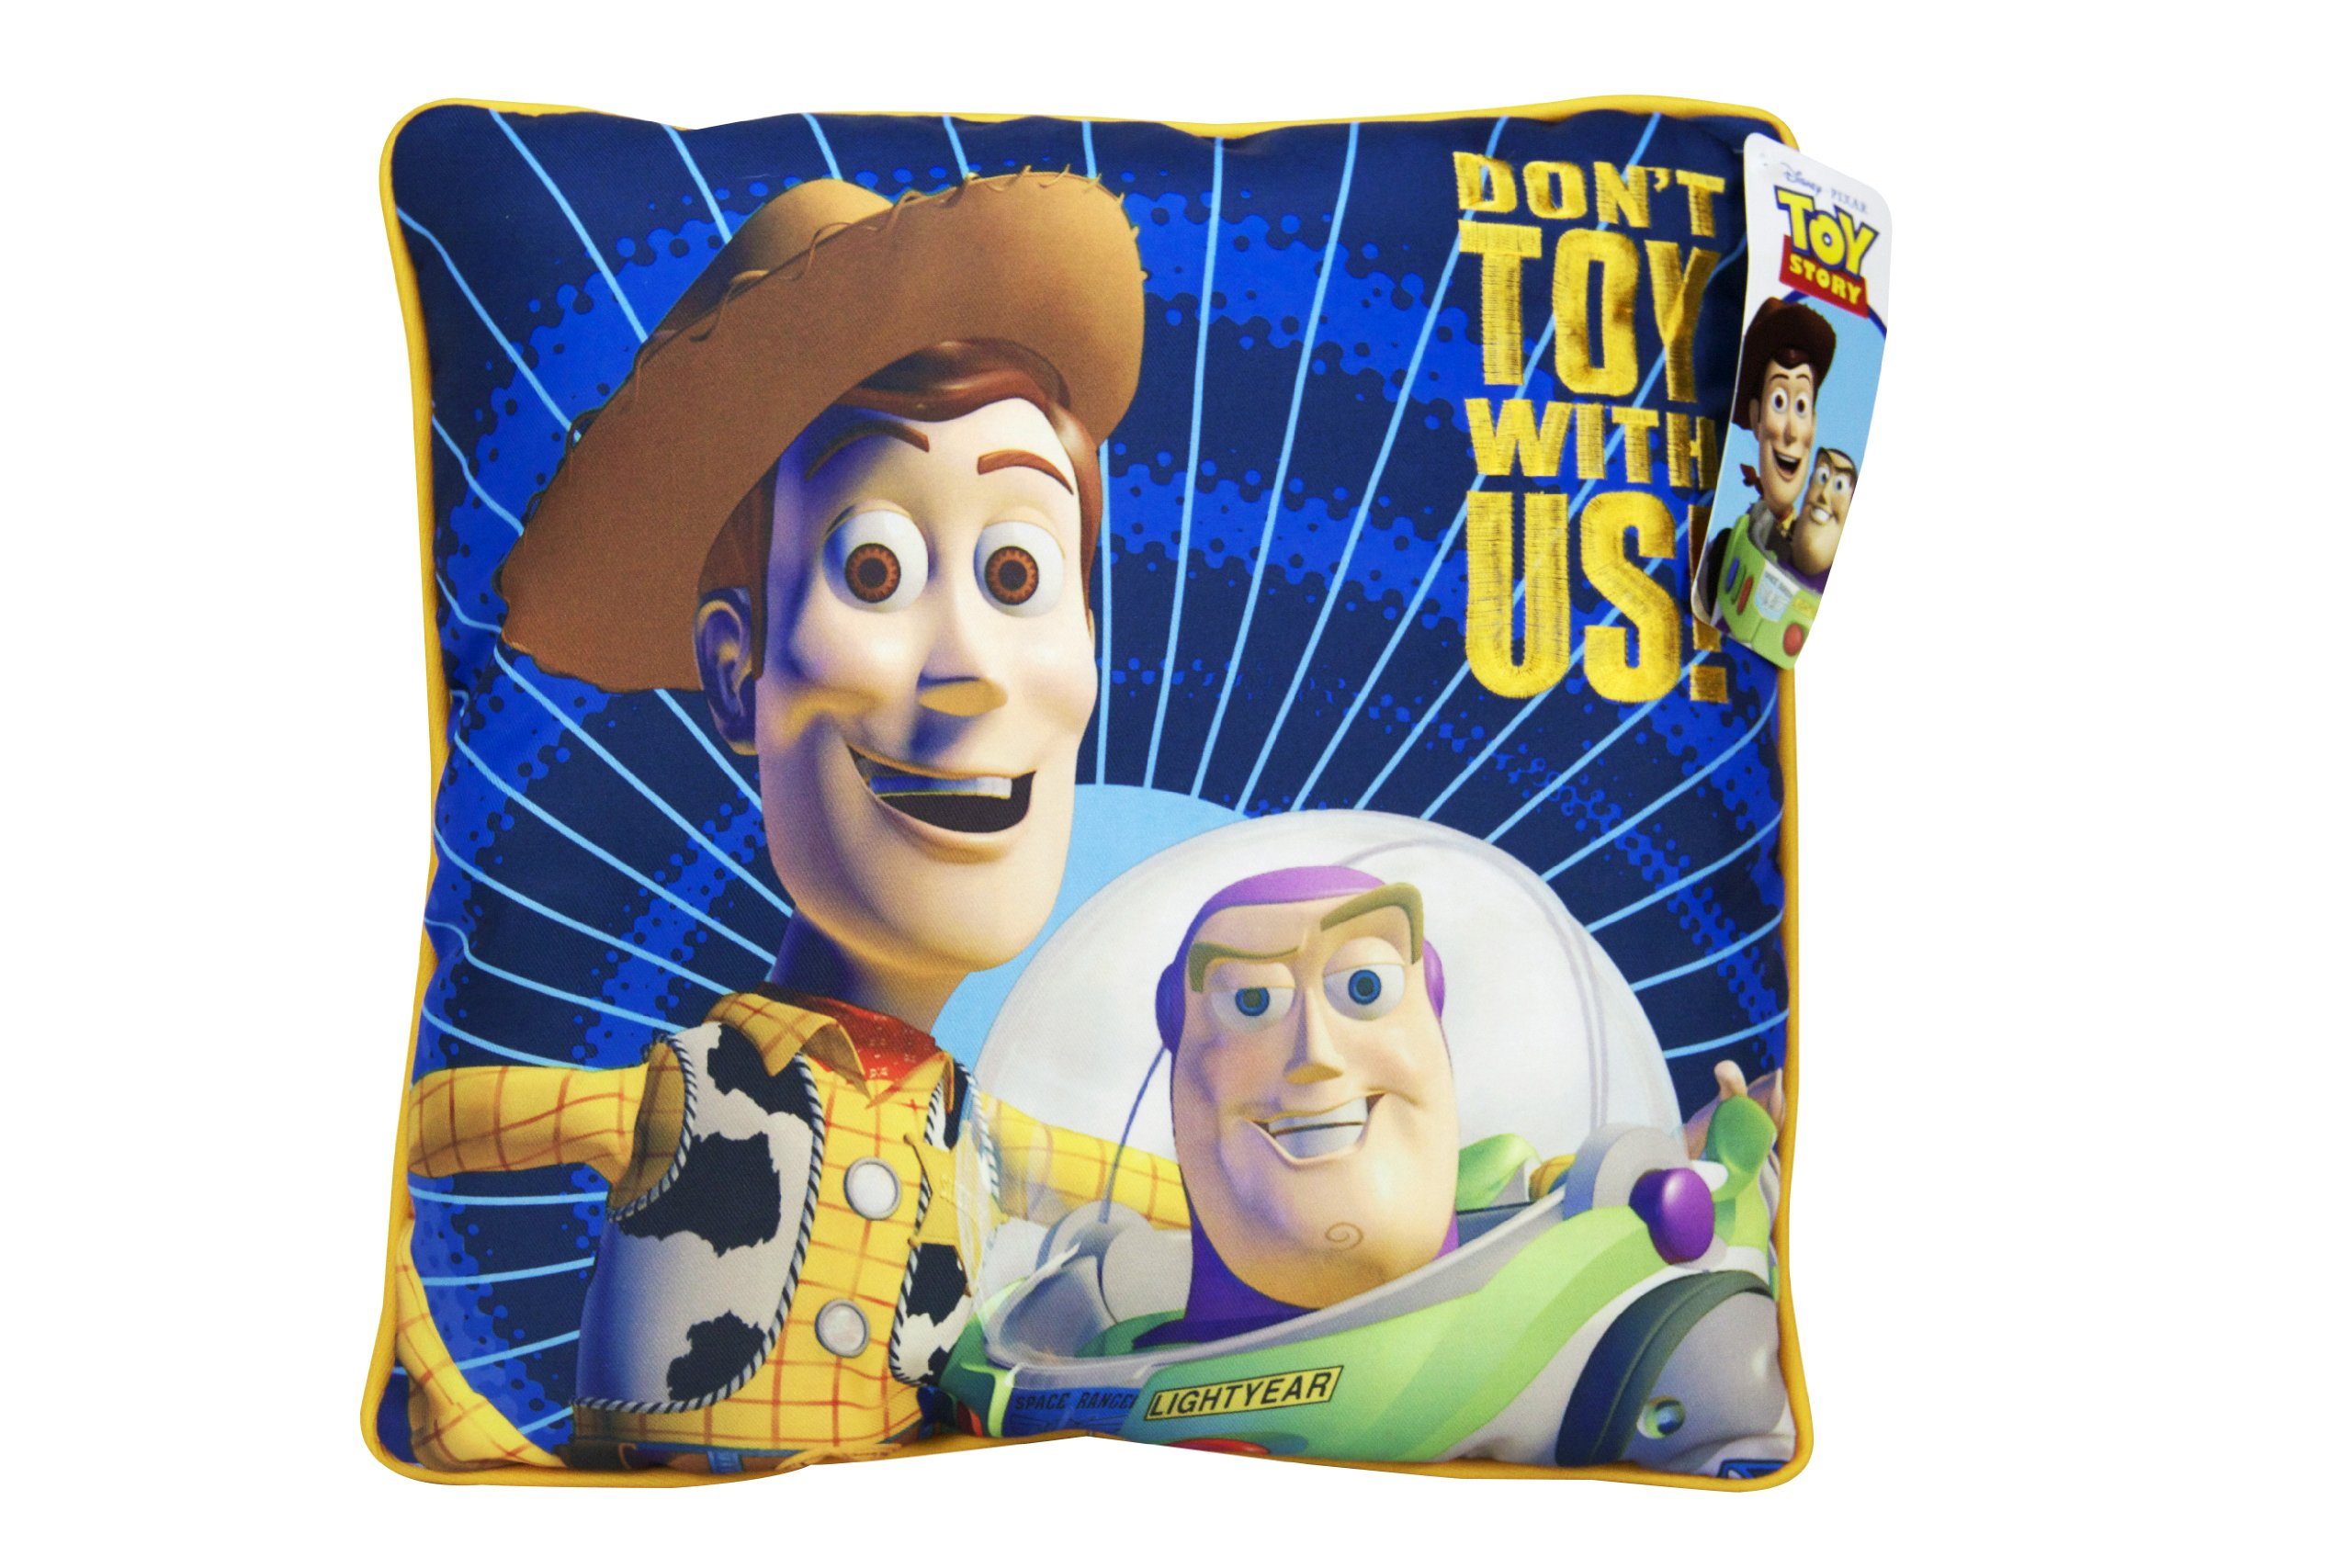 Disney Toy Story Don't Toy with Us Decorative Pillow by Disney